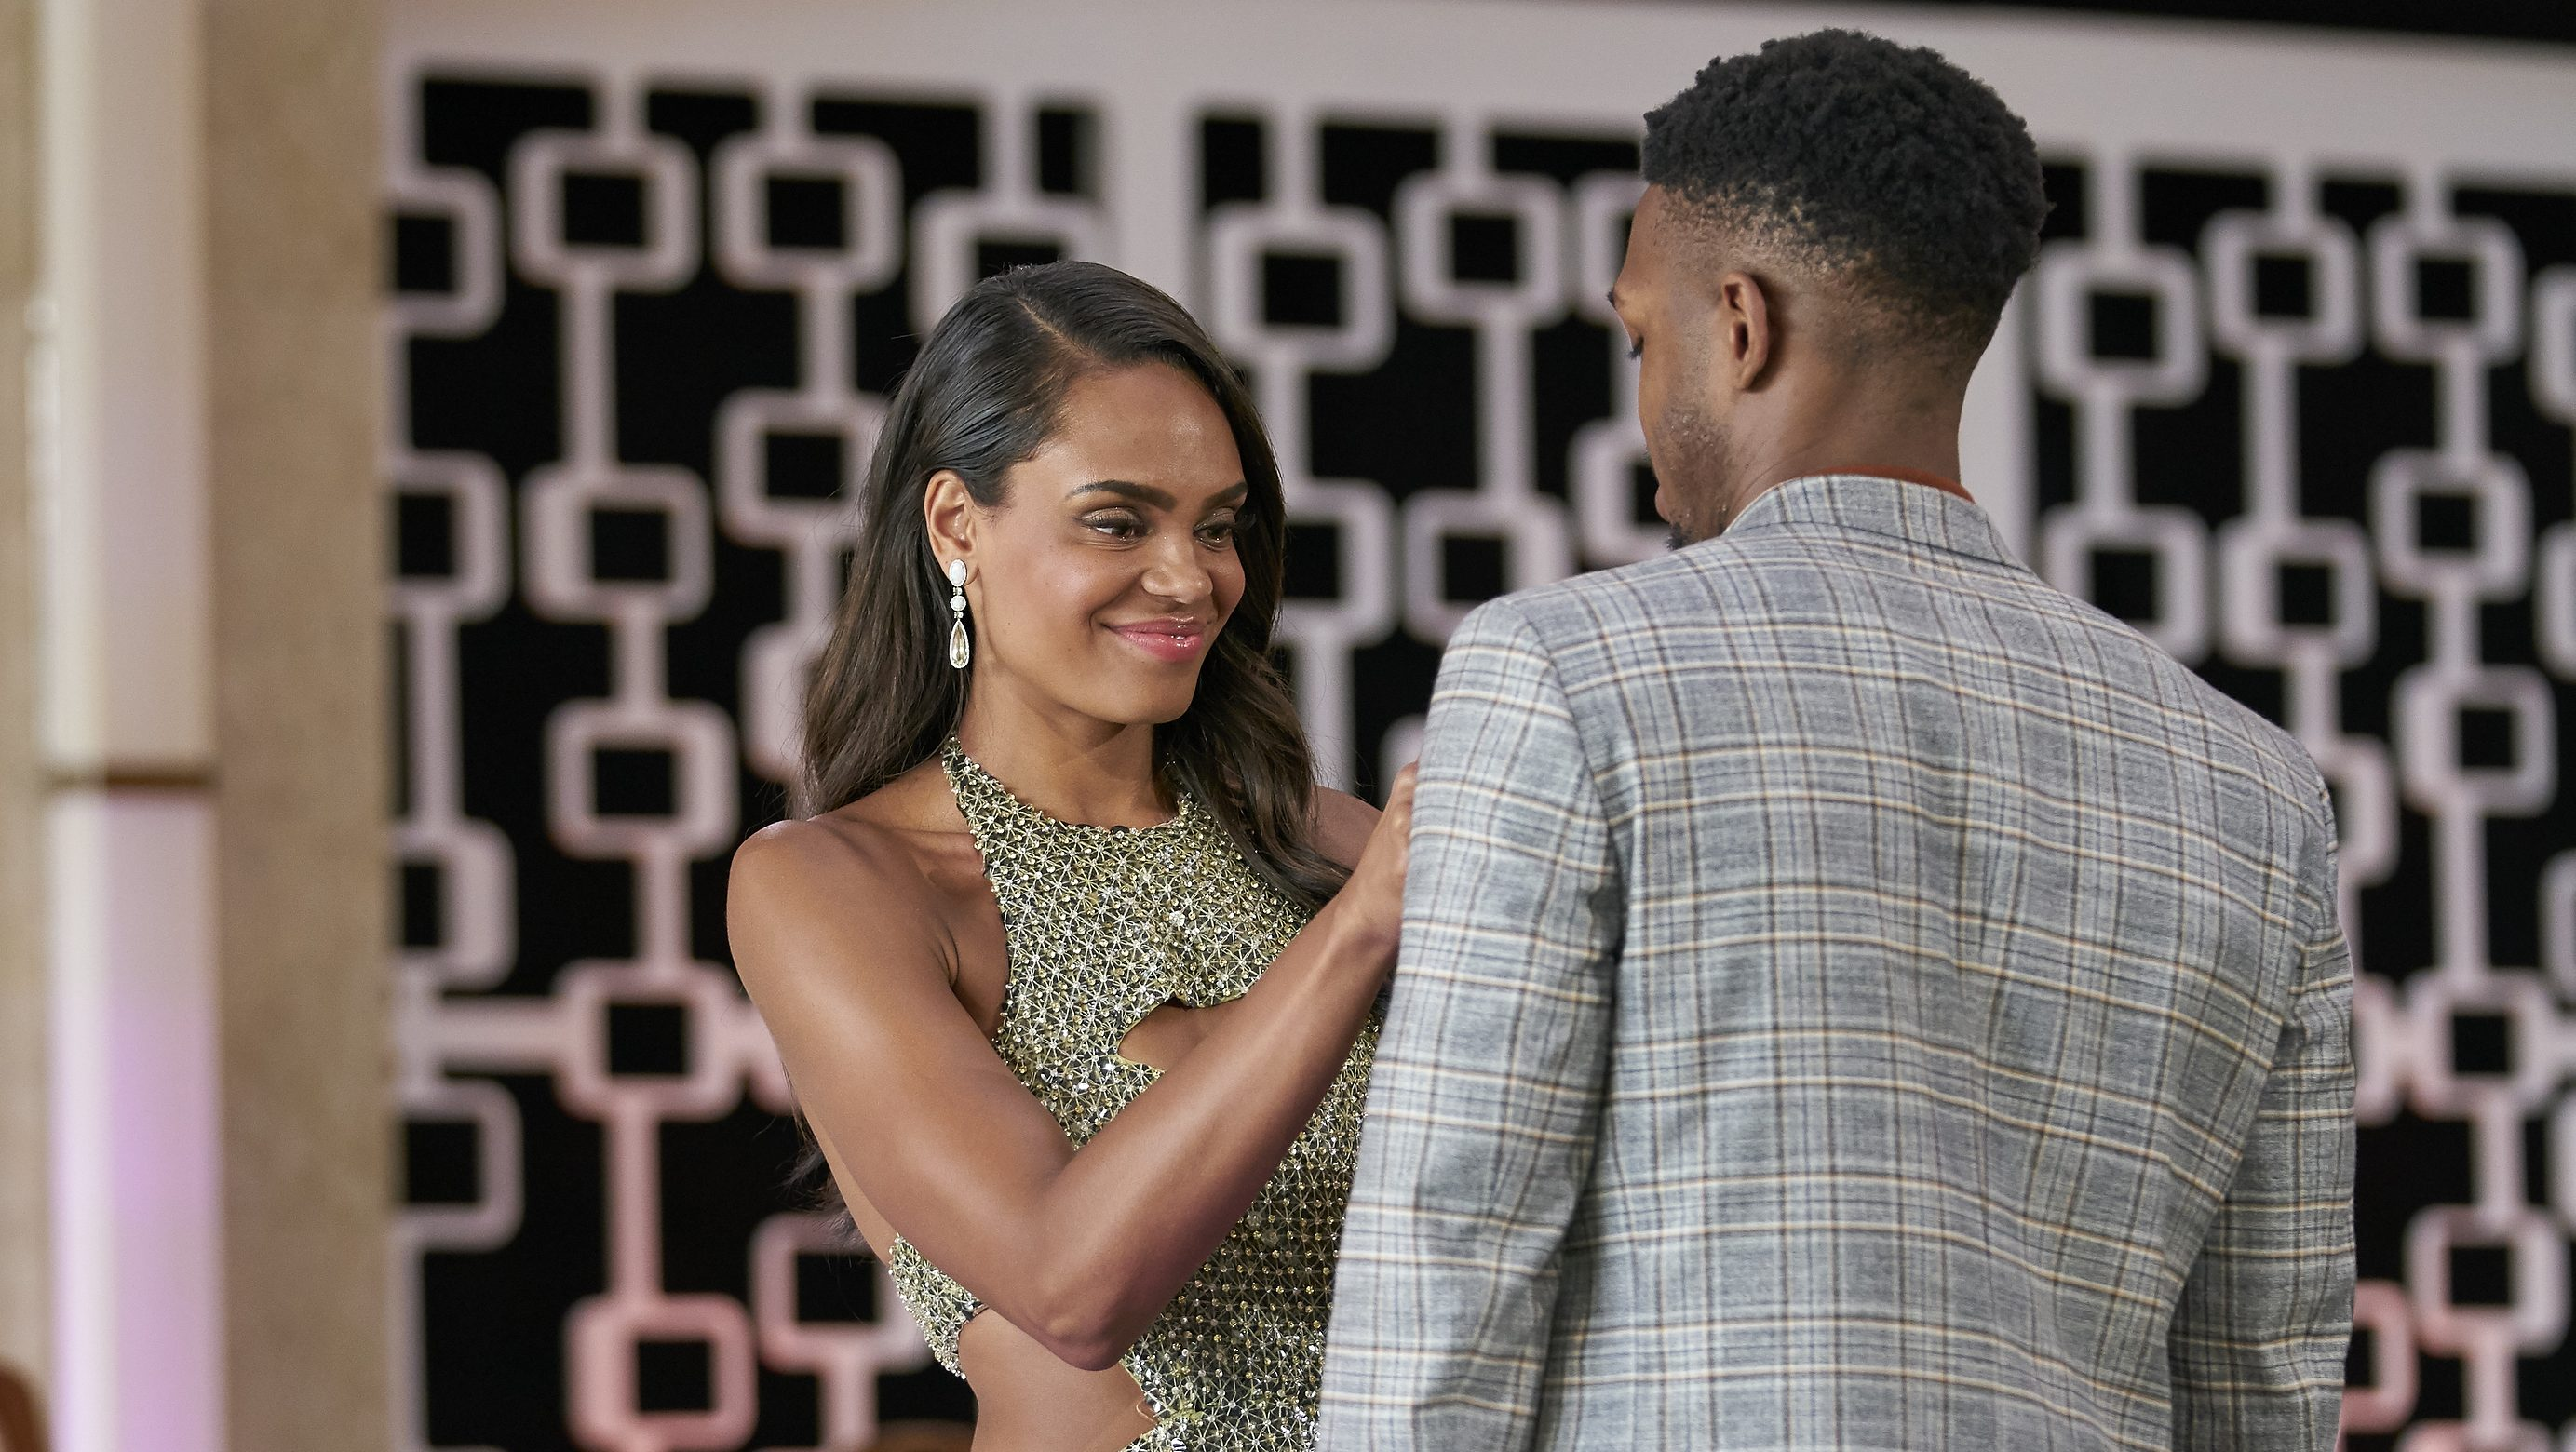 'The Bachelorette' Season 18 Snags Series' Premiere Low, Tops Tuesday Demo; 'The Voice' Wins Viewers